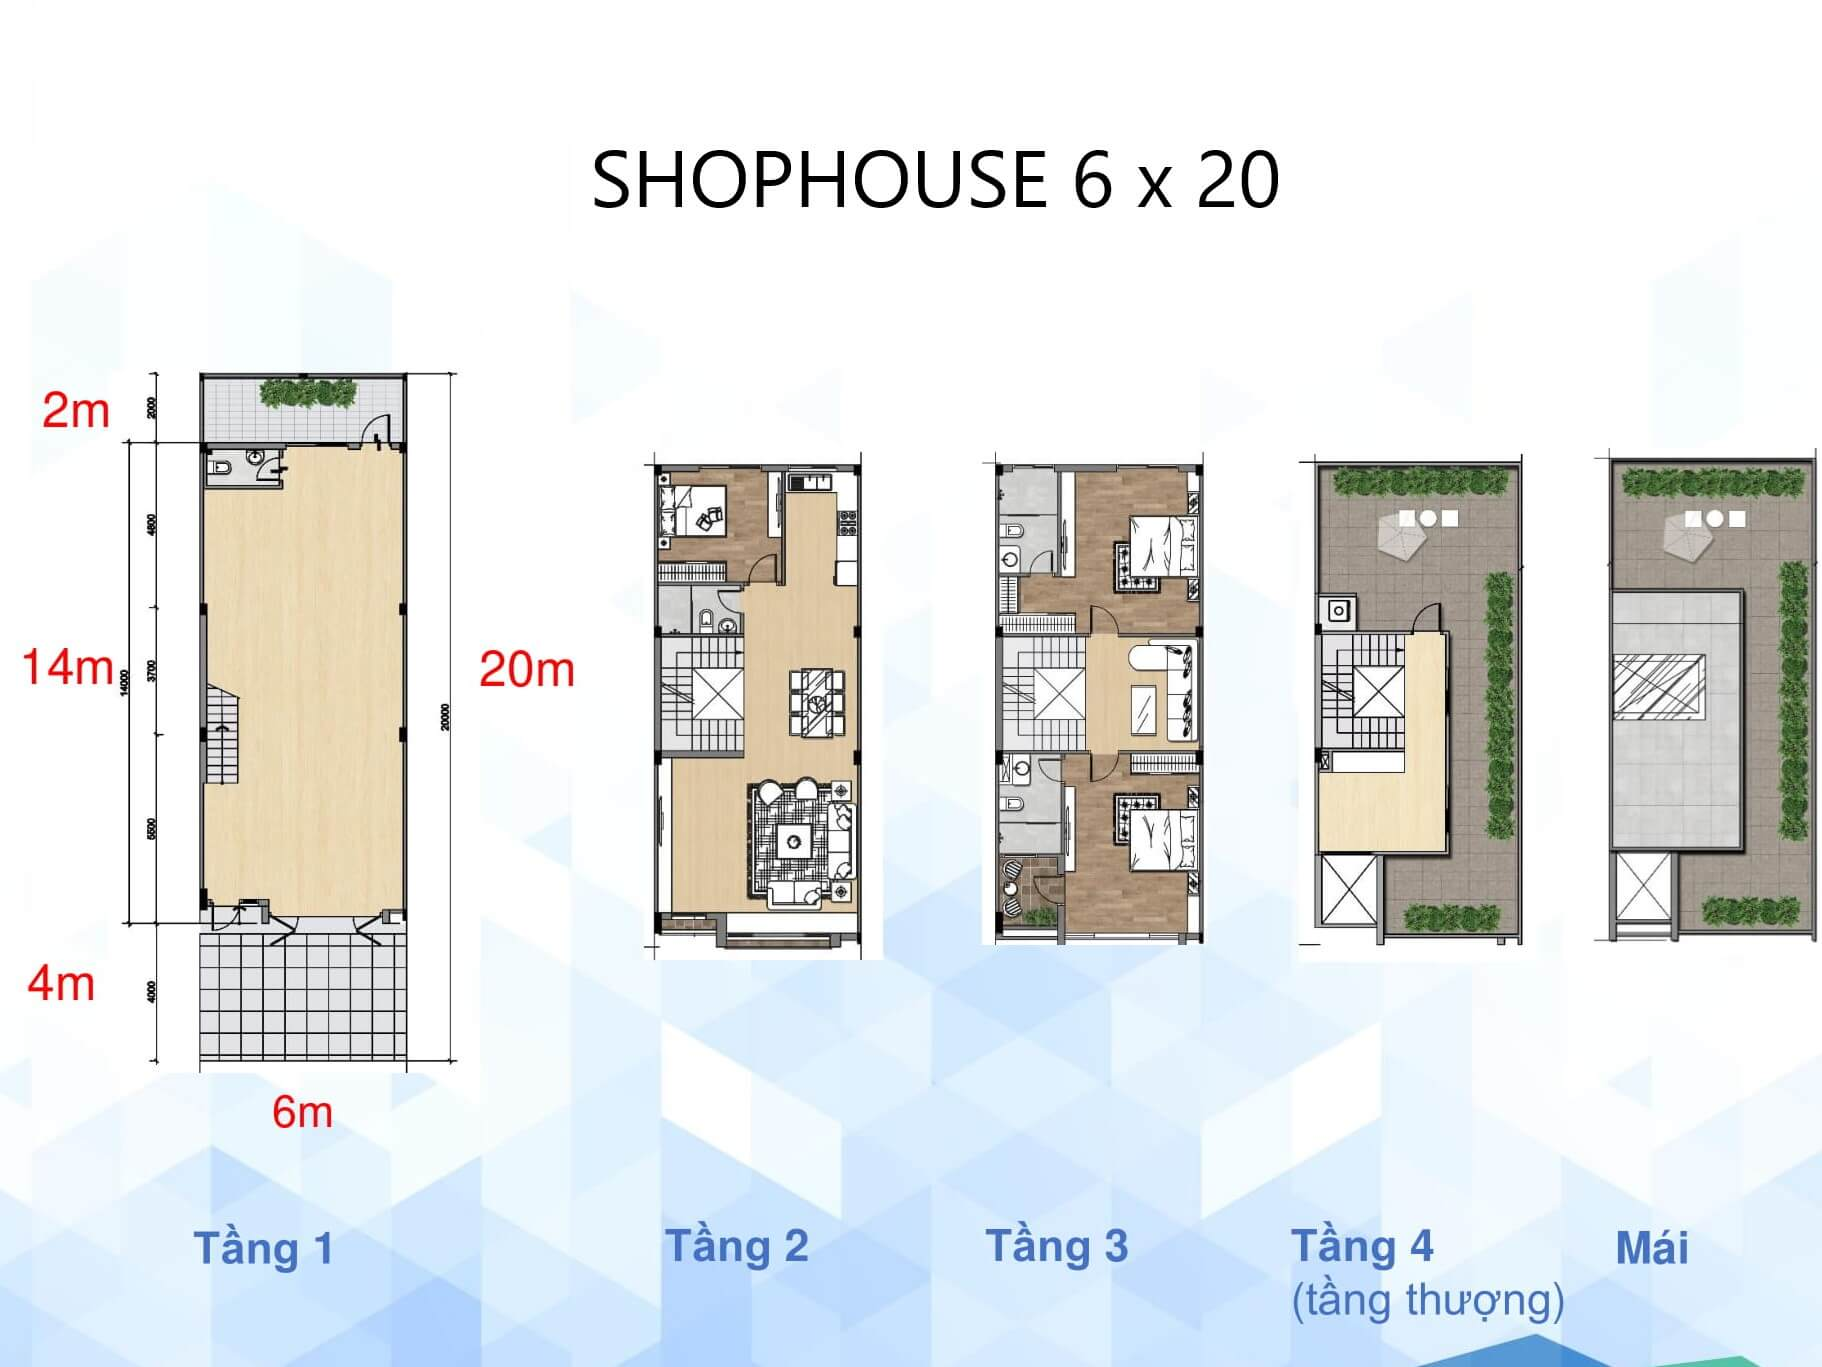 ban-ve-thiet-ket-mat-bang-tang-shophouse-6x20-1-gem-sky-world-long-thanh-dat-xanh-shophousevn